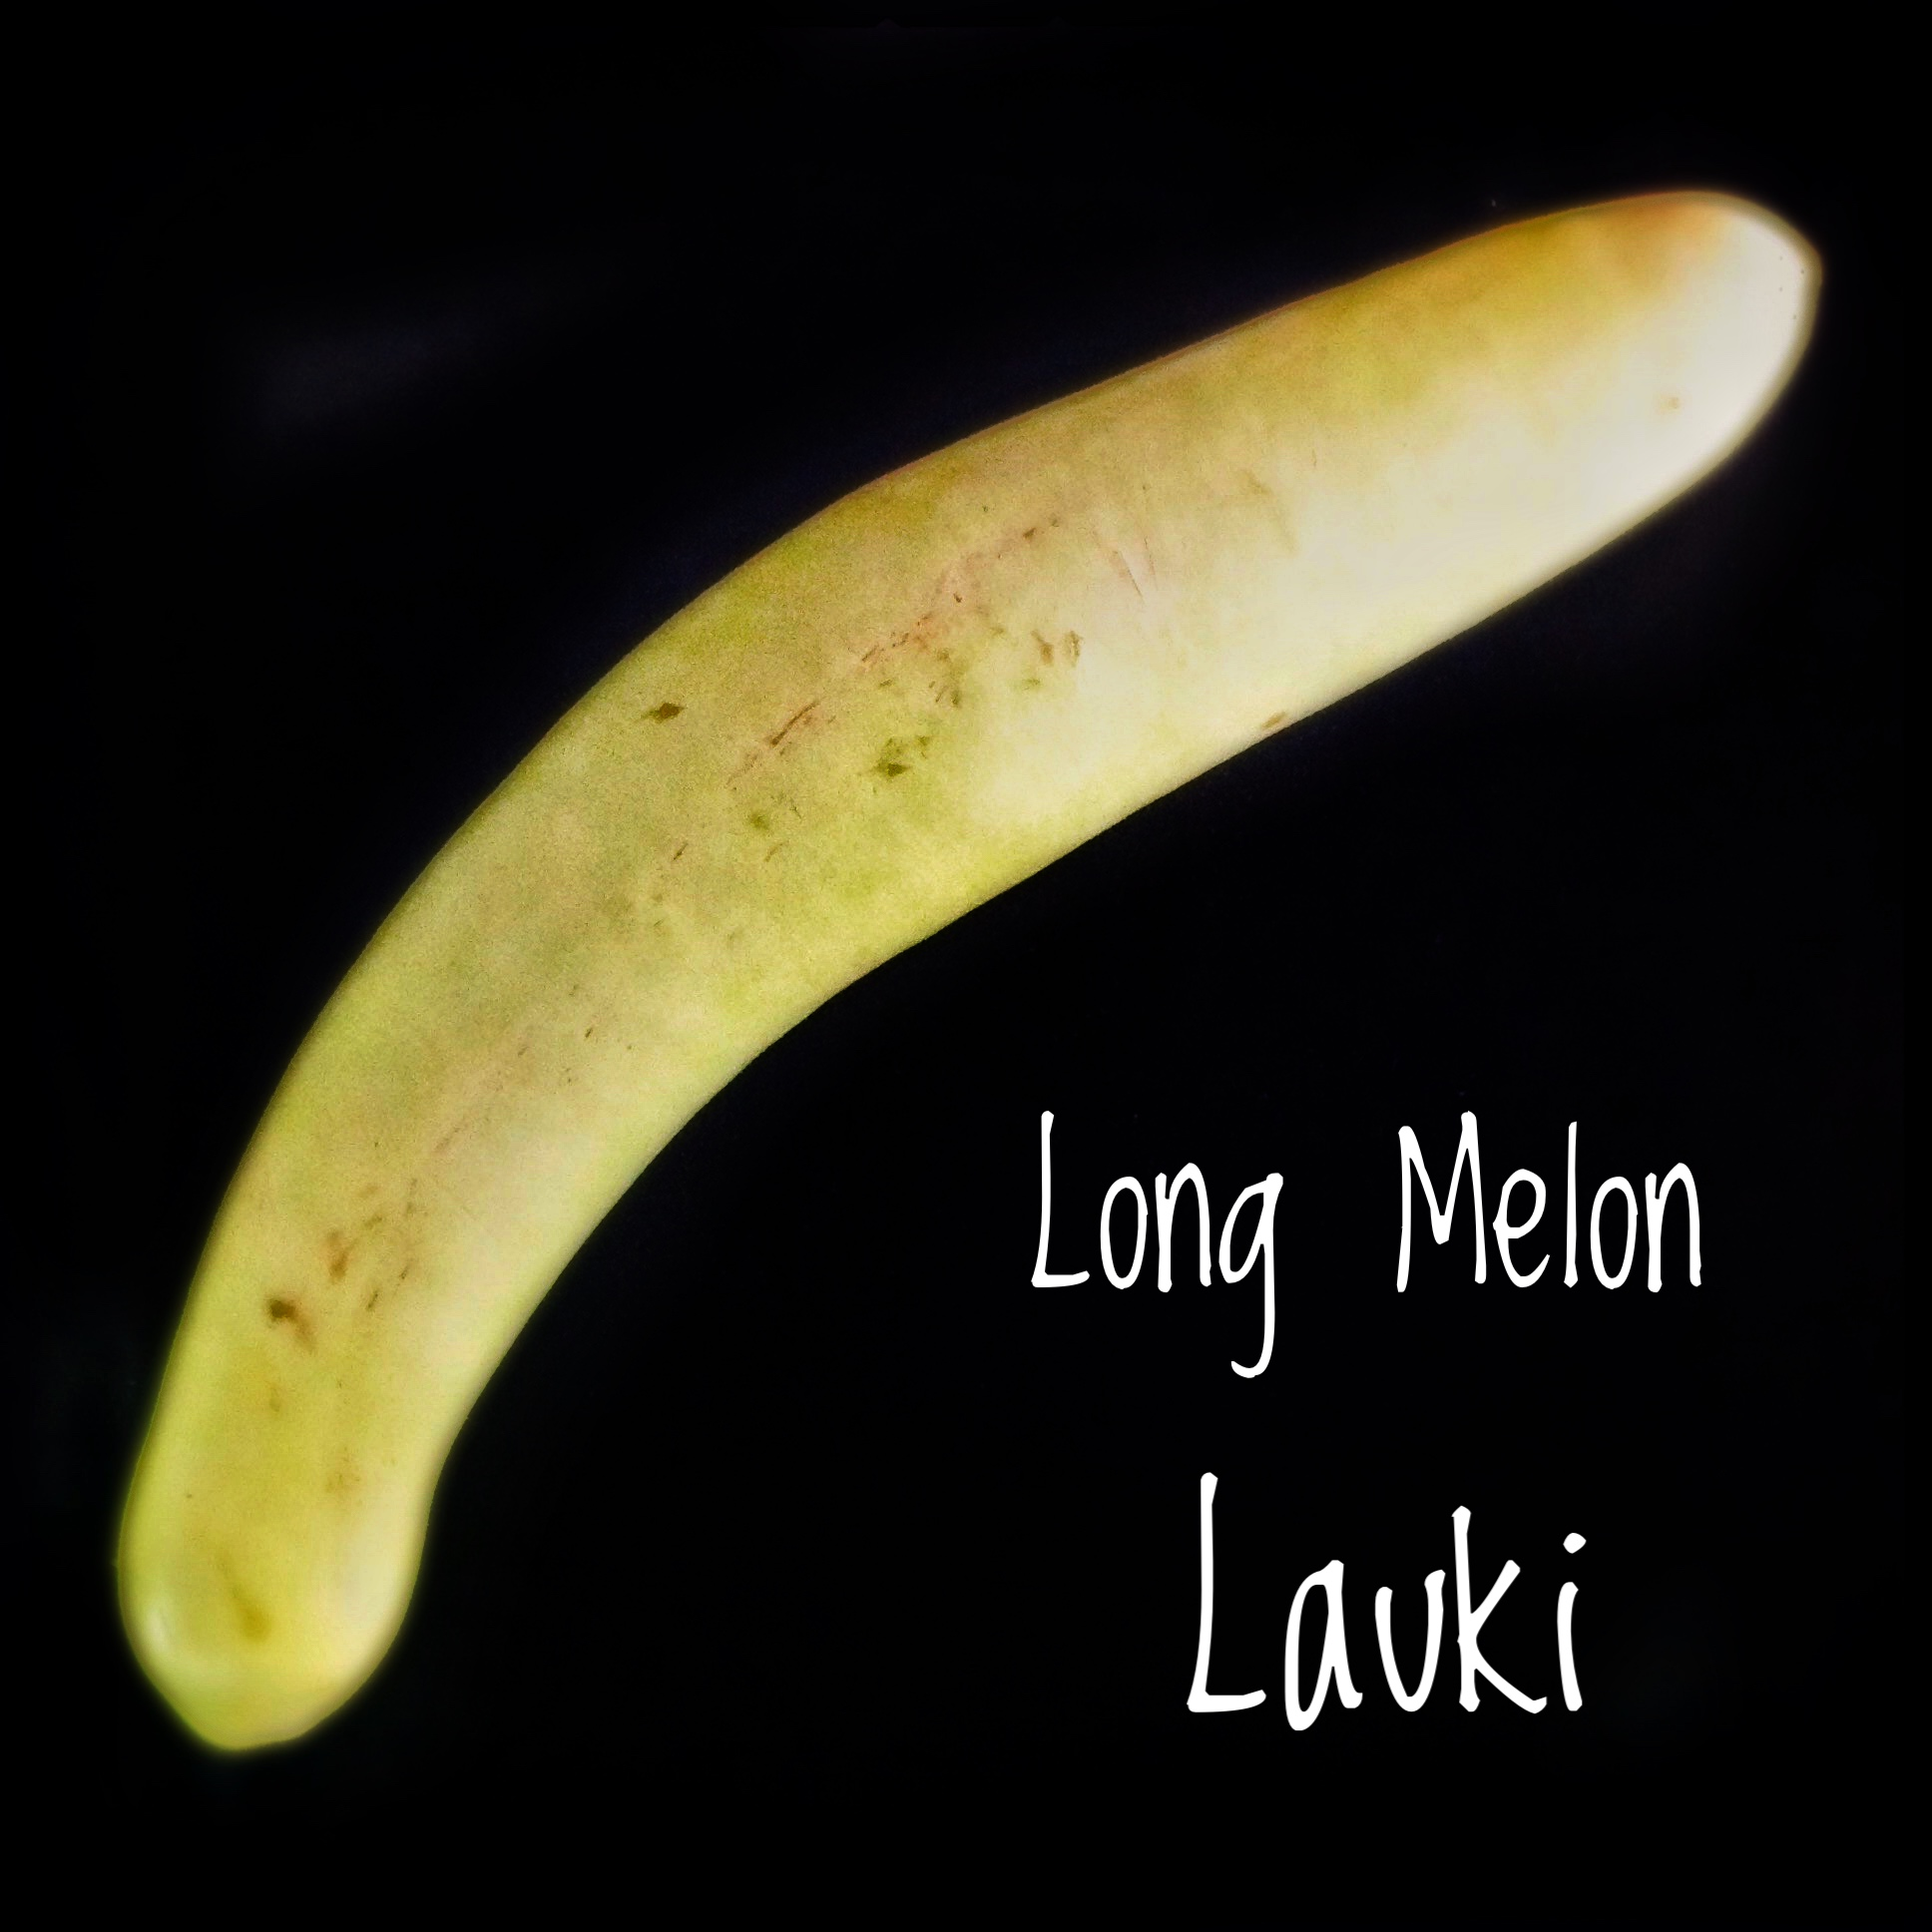 Ingredients: Long Melon | Bottle Gourd | Lauki